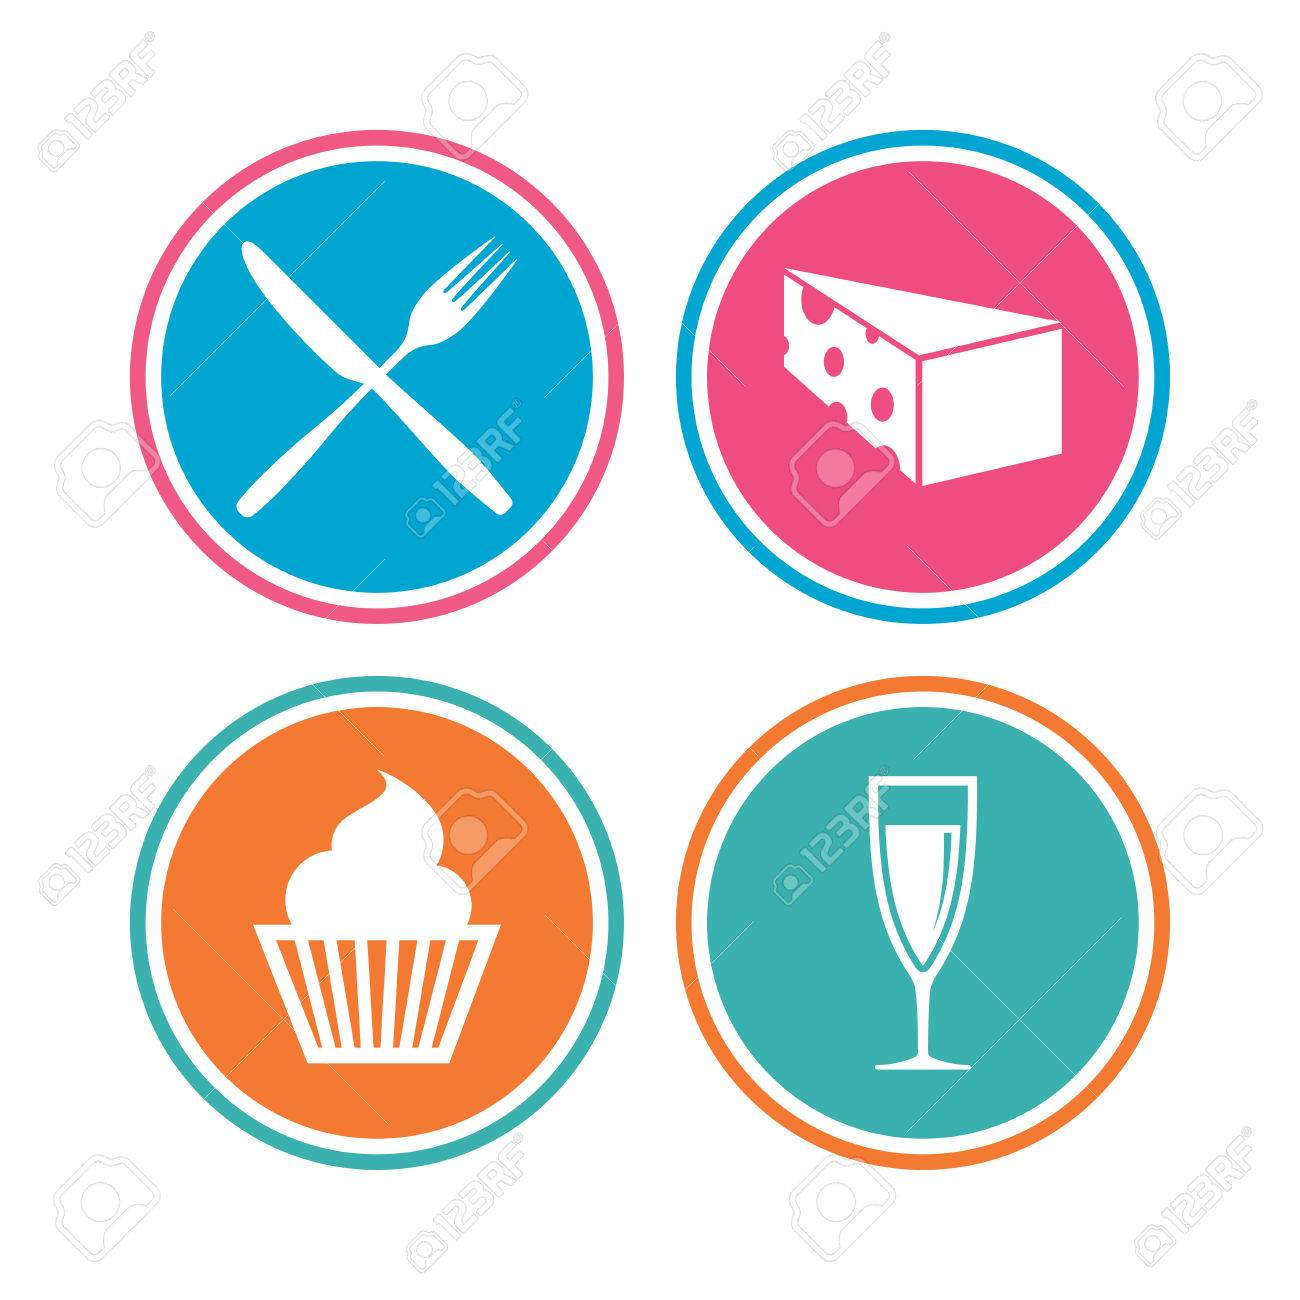 Food Icons Muffin Cupcake Symbol Fork And Knife Sign Glass Of